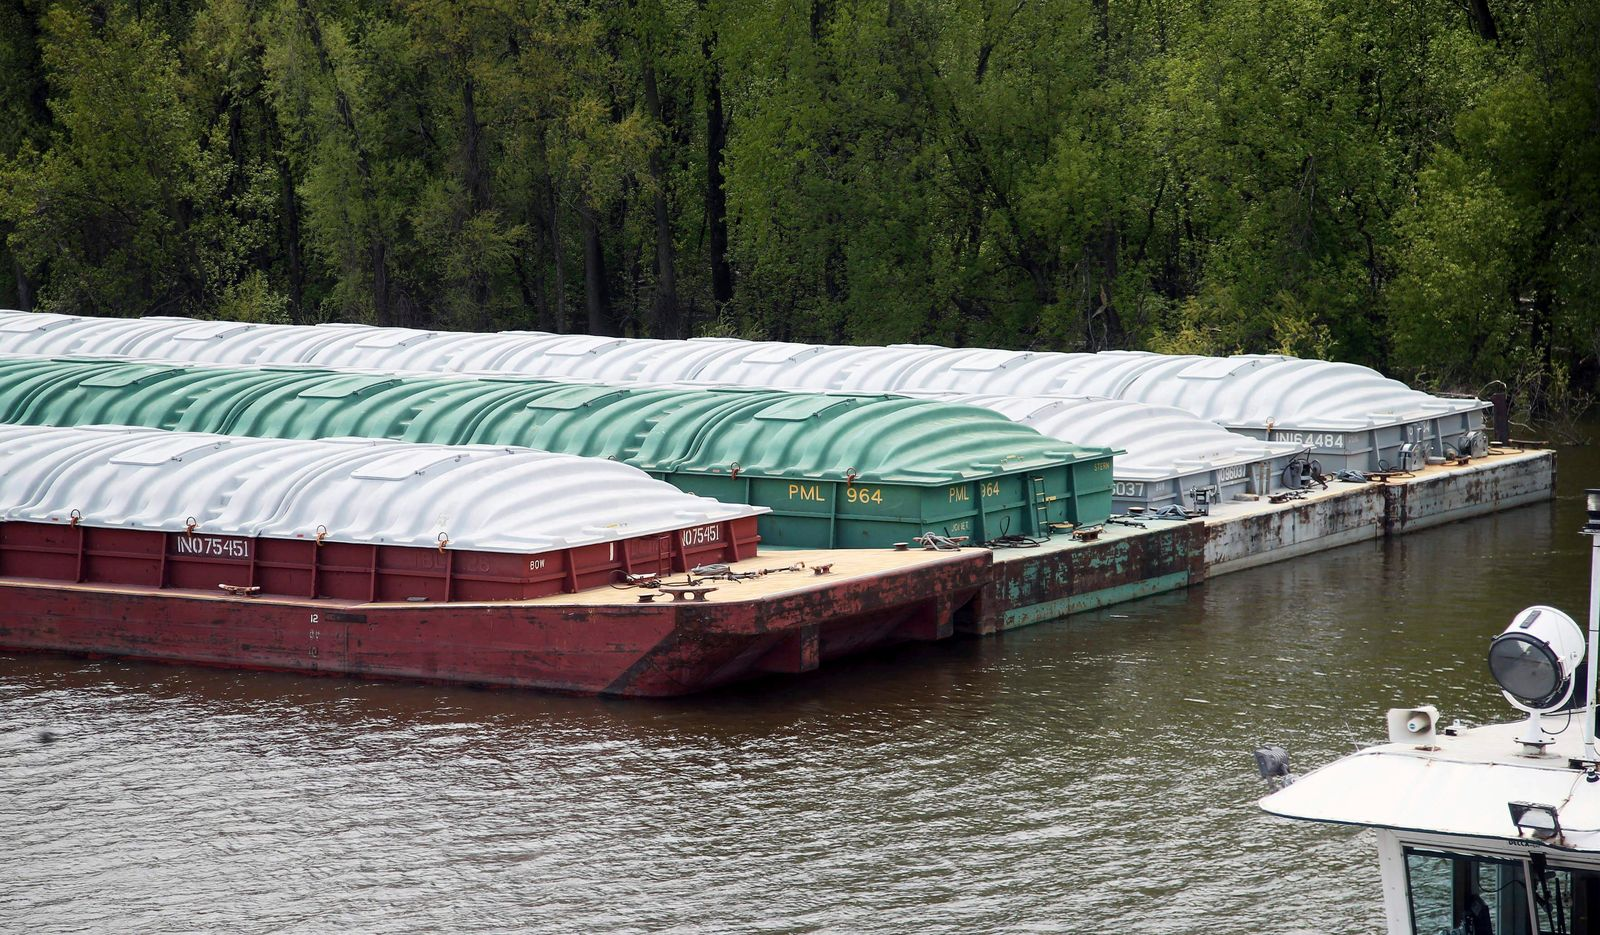 In this Tuesday, May 14, 2019 photo, barges already loaded with soy beans, potash or scrap steel await movement on the Mississippi River in St. Paul, Minn., as spring flooding interrupts shipments on the river. (AP Photo/Jim Mone)